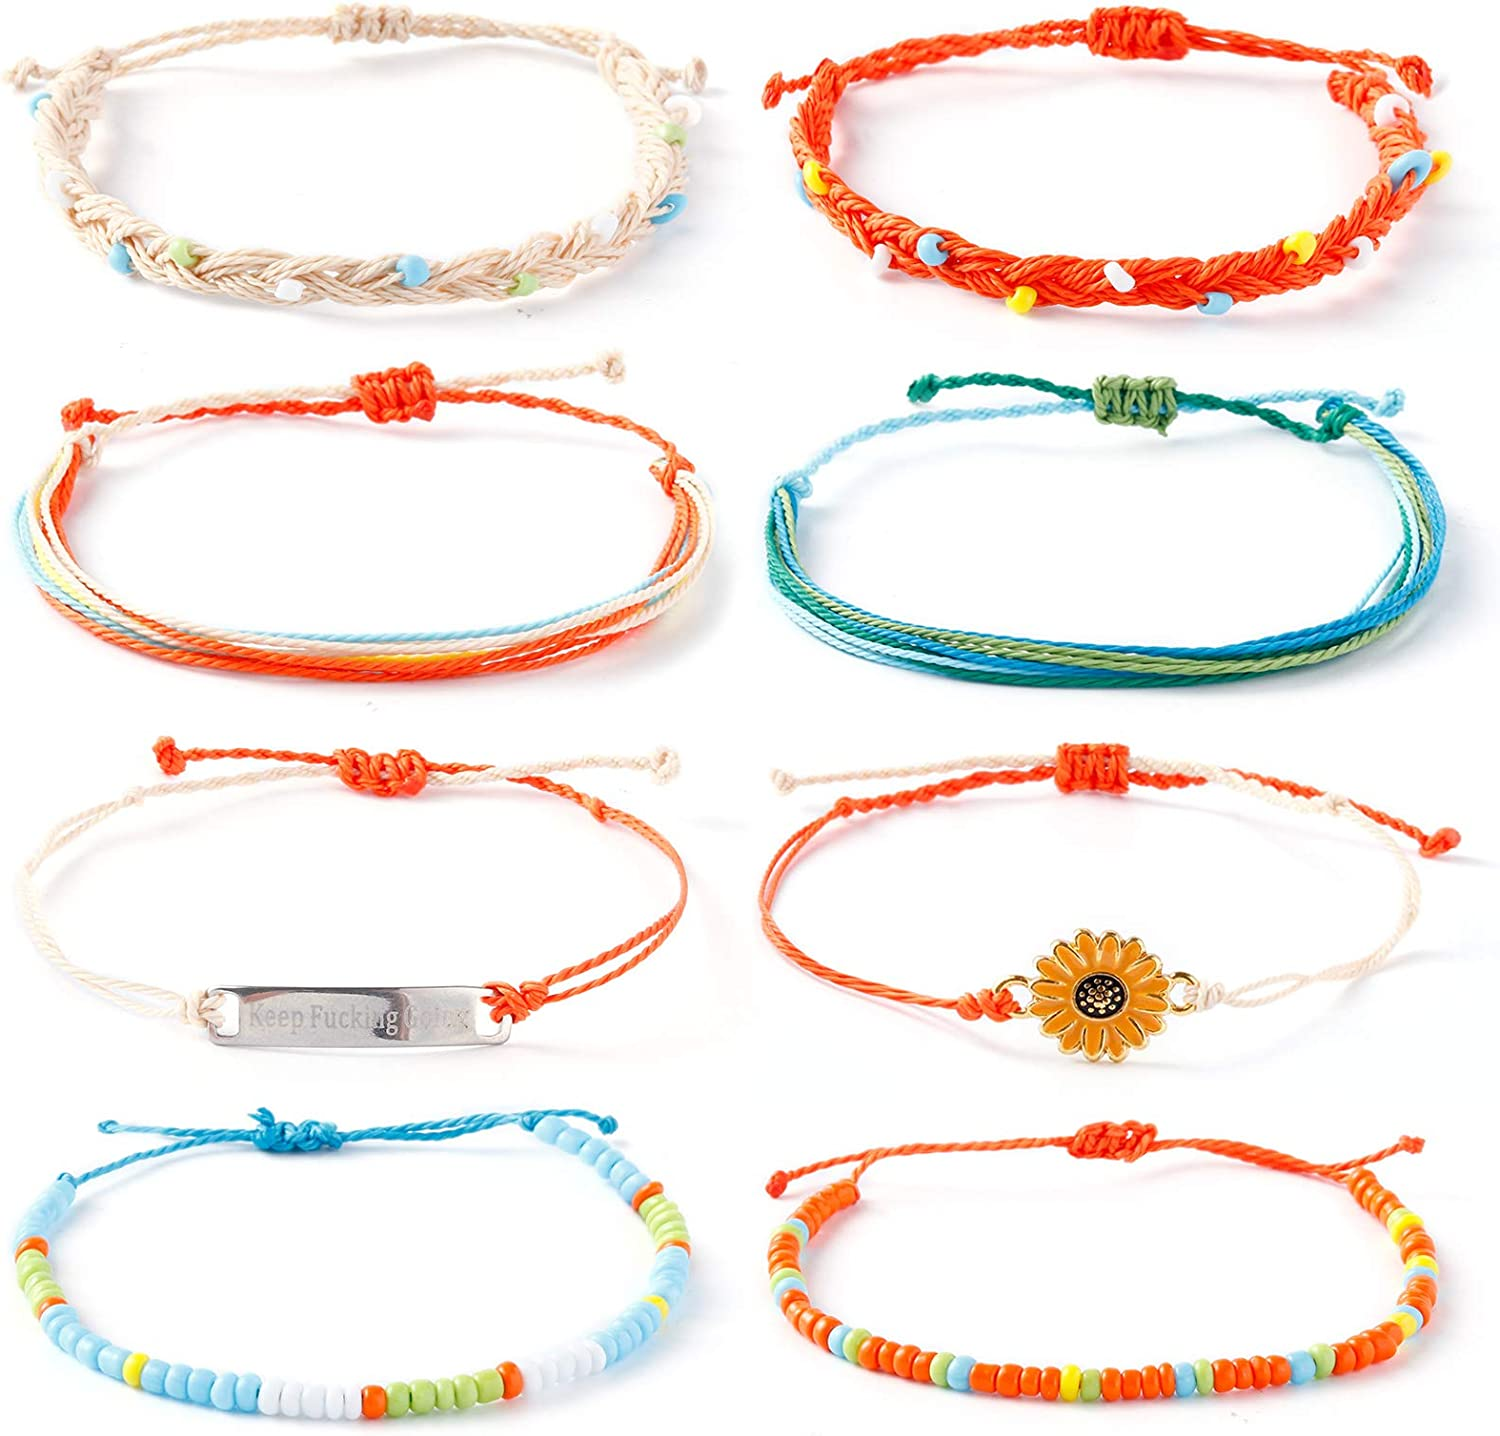 ISWAKI 4 Pcs Ankle Bracelets Braided Shell Feet Rope Coin Adjust